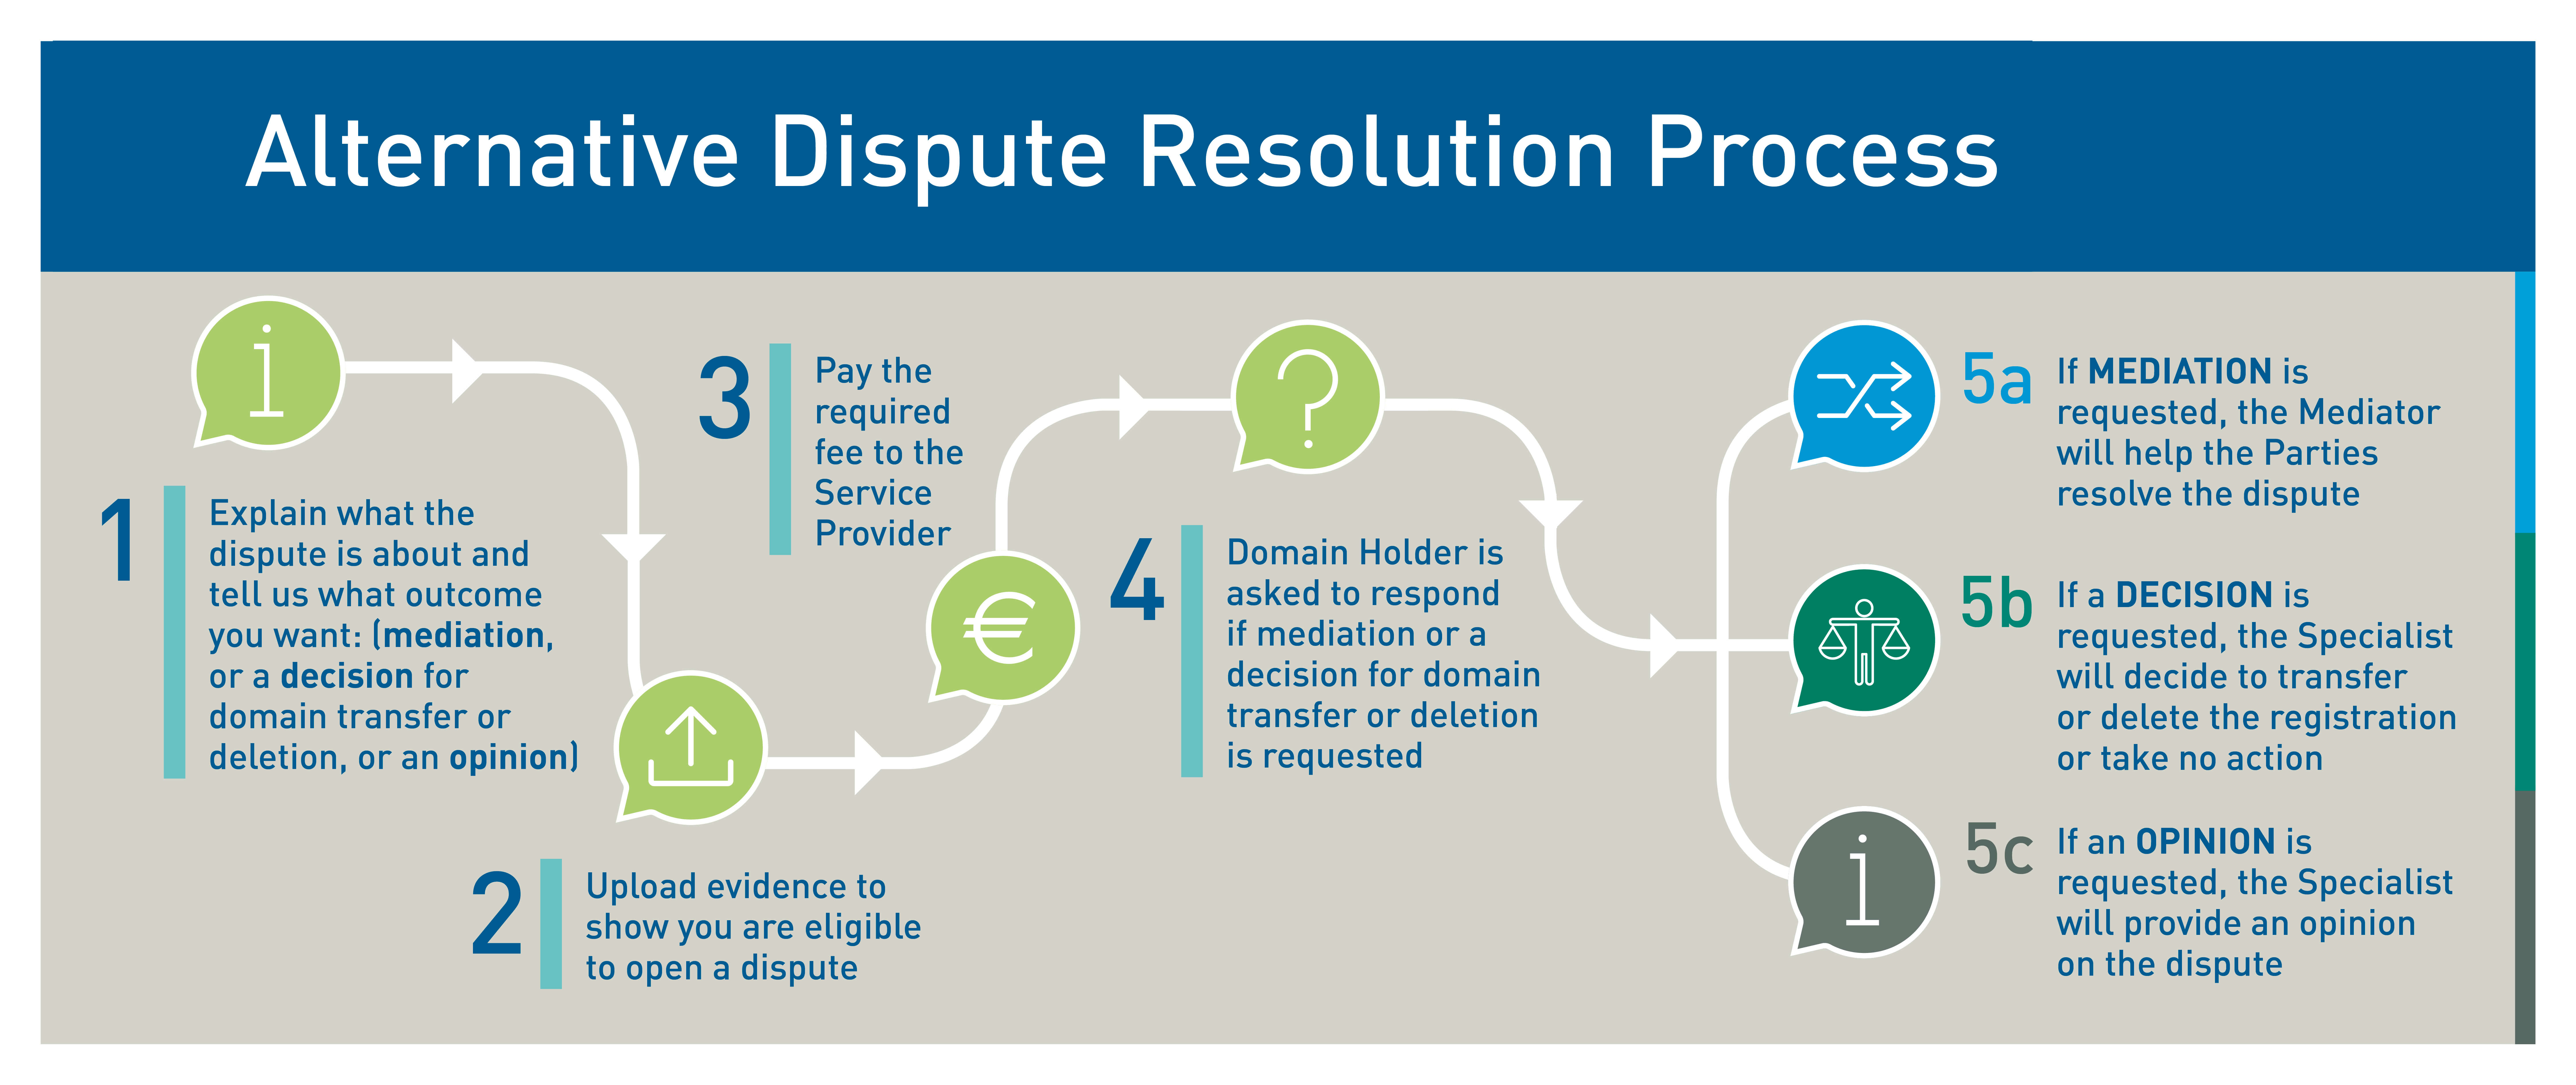 Alternative Dispute Resolution Process Graphic: How does it work?